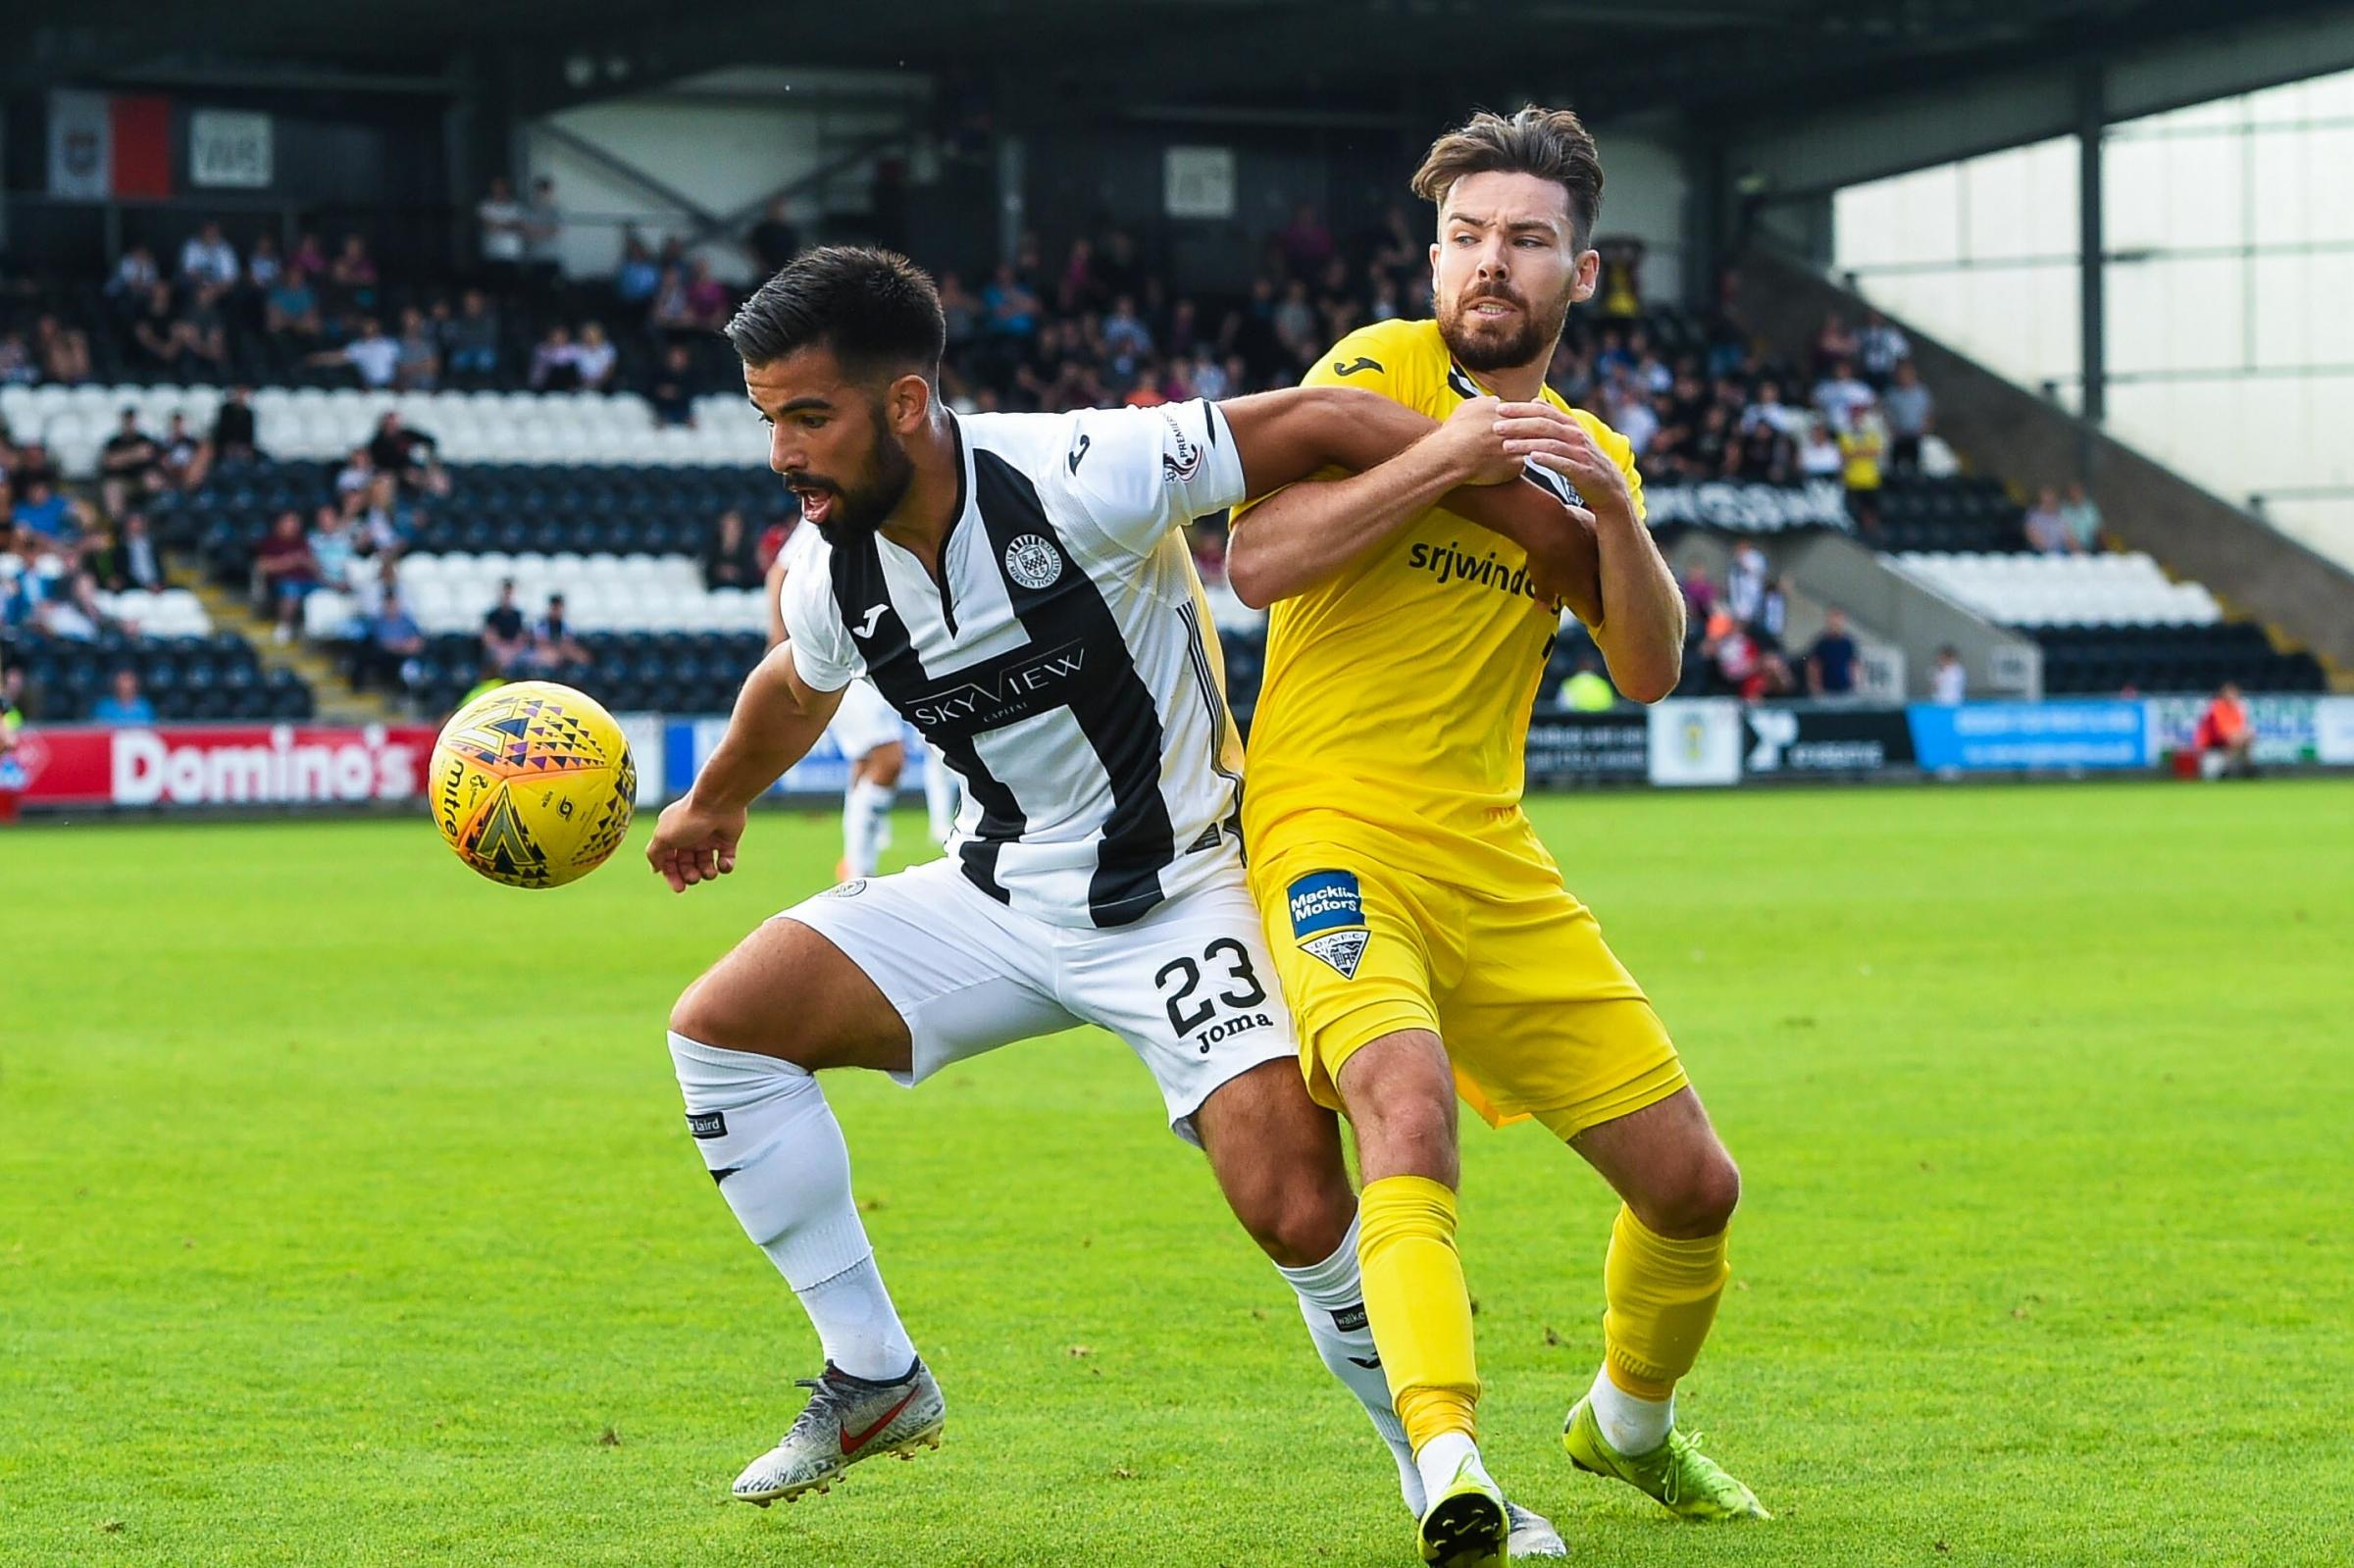 Djorkaeff says he will continue learning to live his own life at St Mirren